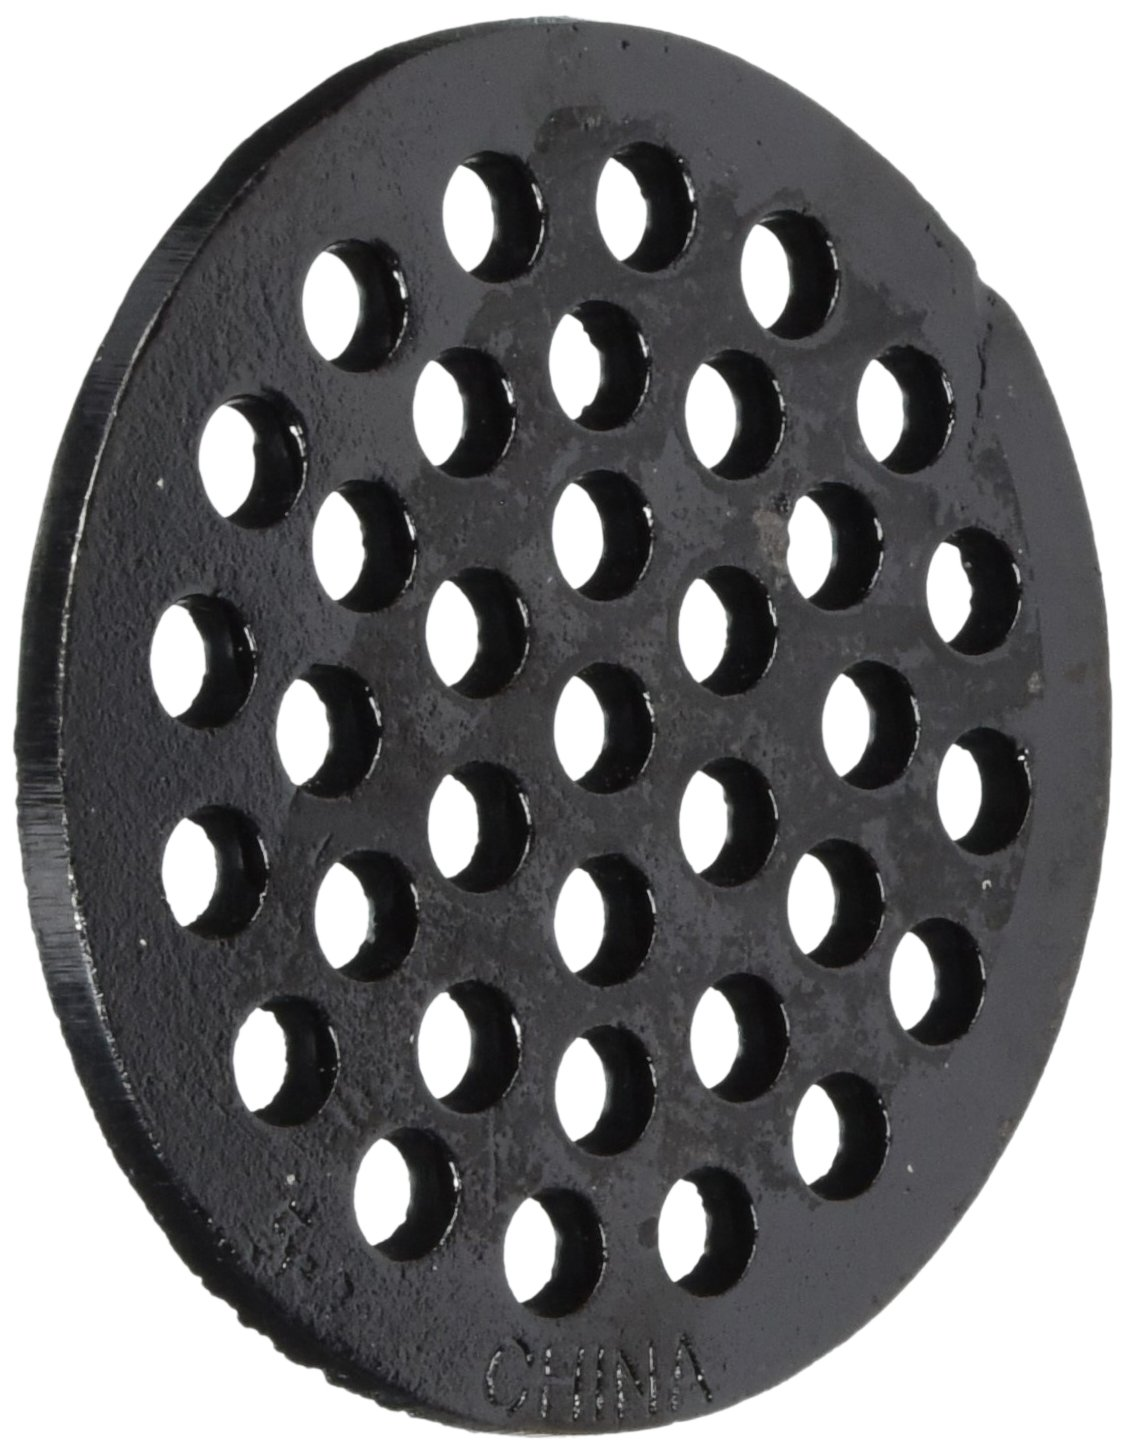 Sioux Chief 846-S3PK 5-Inch Cast Iron Strainer